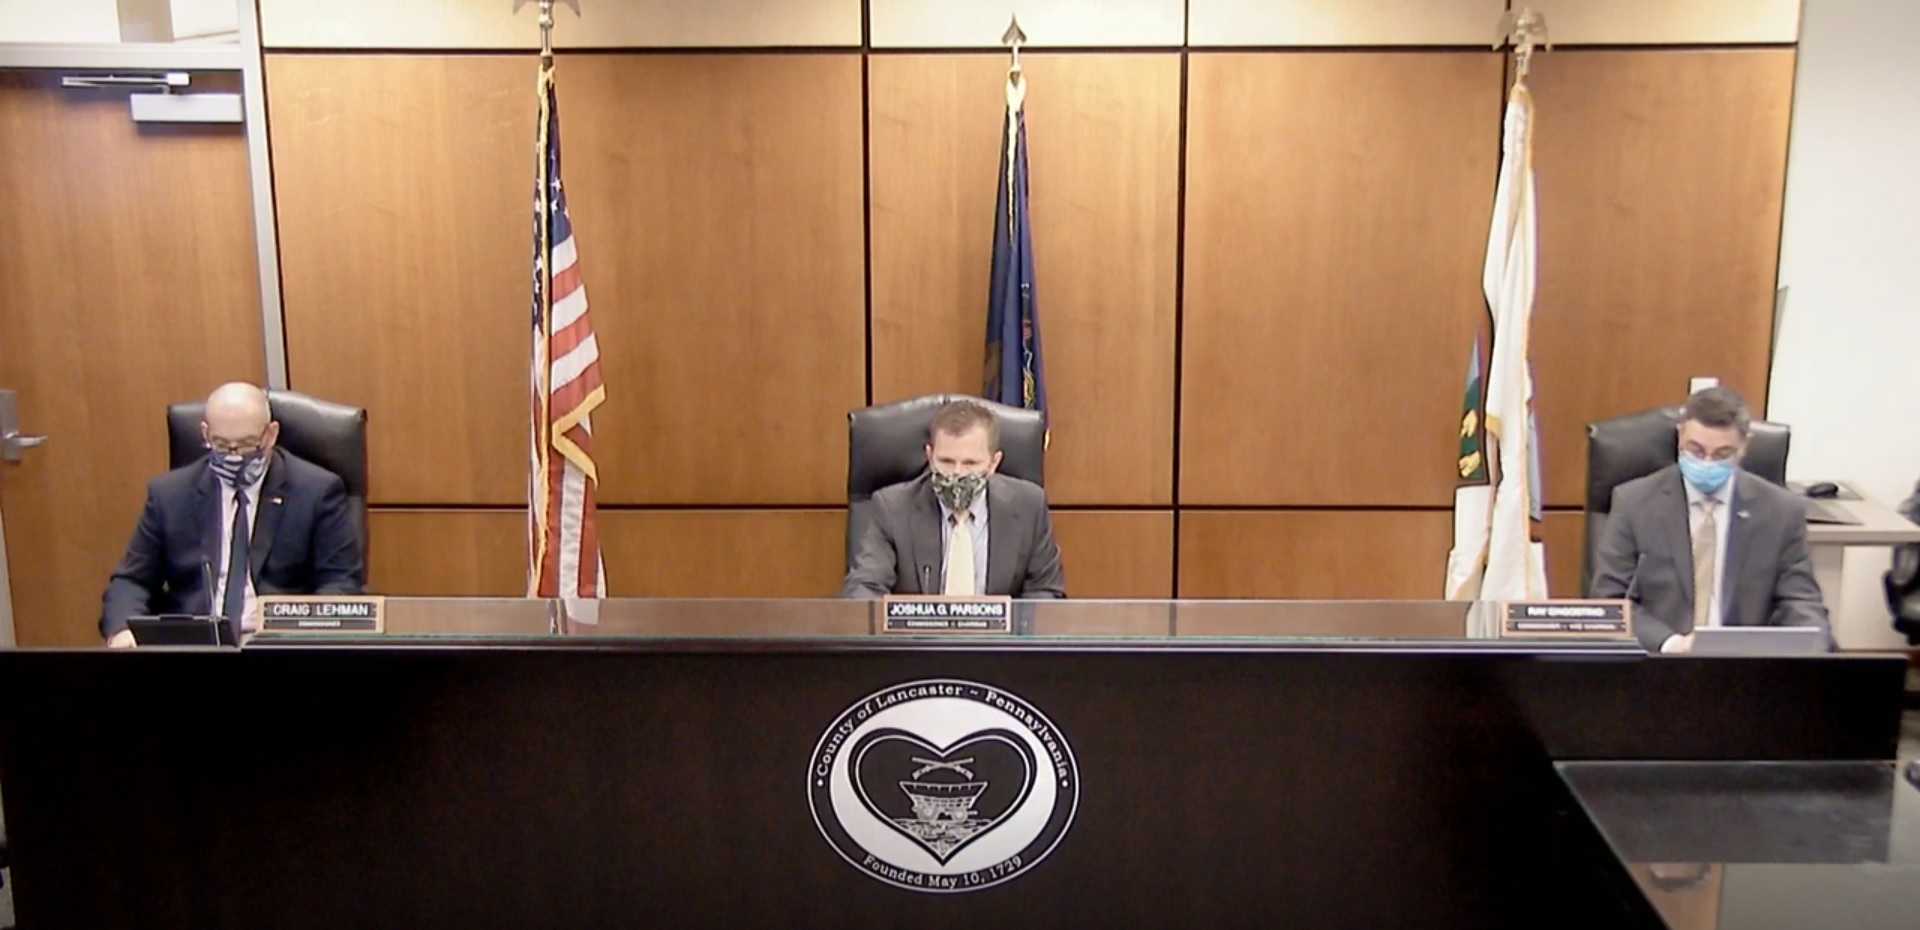 From left, Lancaster County Commissioners Craig Lehman, Josh Parsons and Ray D'Agostino are seen in an online livestream of their meeting Wednesday, Oct. 28, 2020.